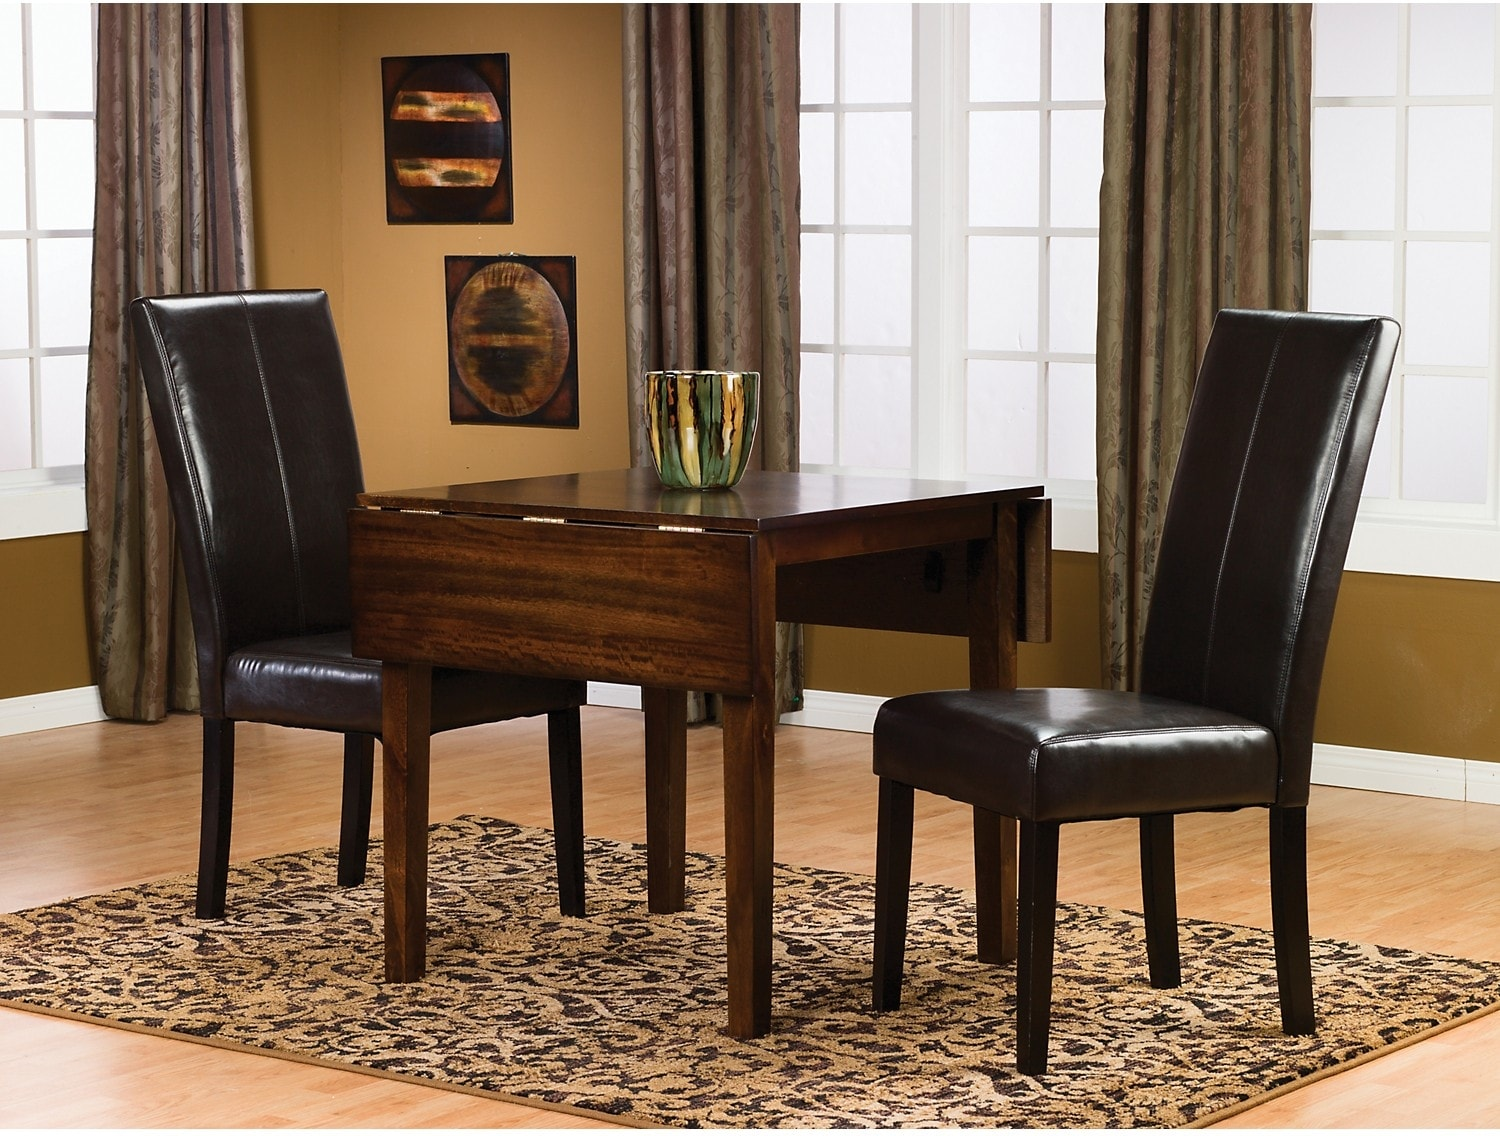 Dining Room Furniture - Adara 3-Piece Square Table Dining Package w/ Brown Chairs